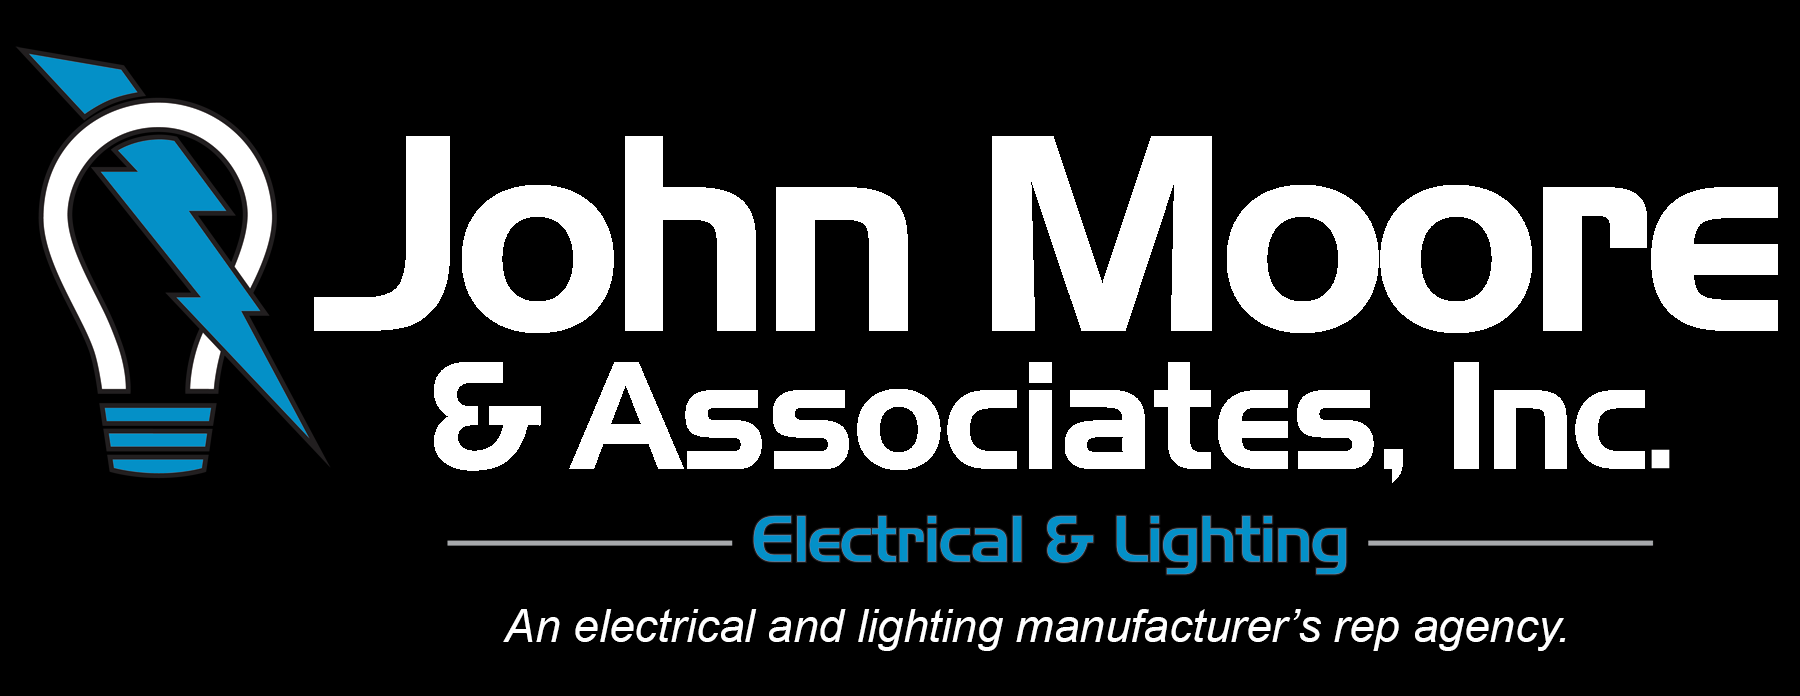 jma logo white with tag and line 3